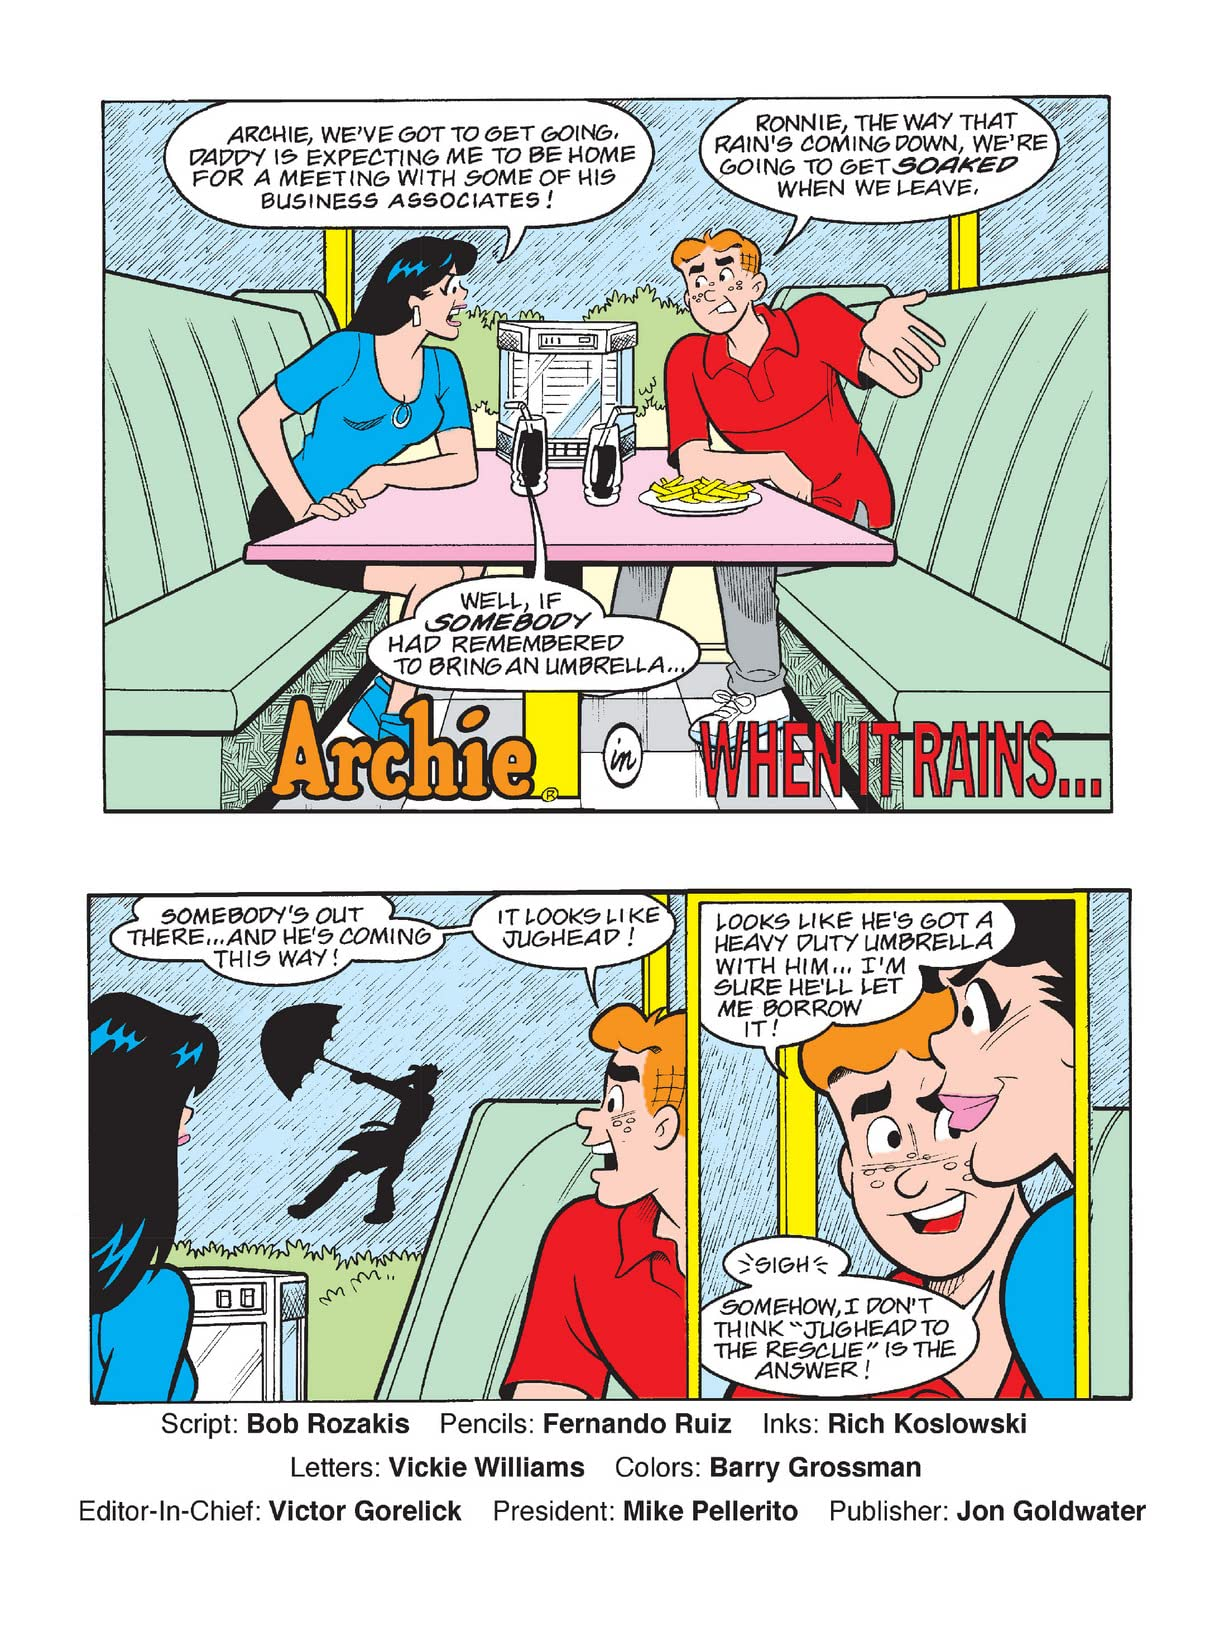 World of Archie Double Digest #38